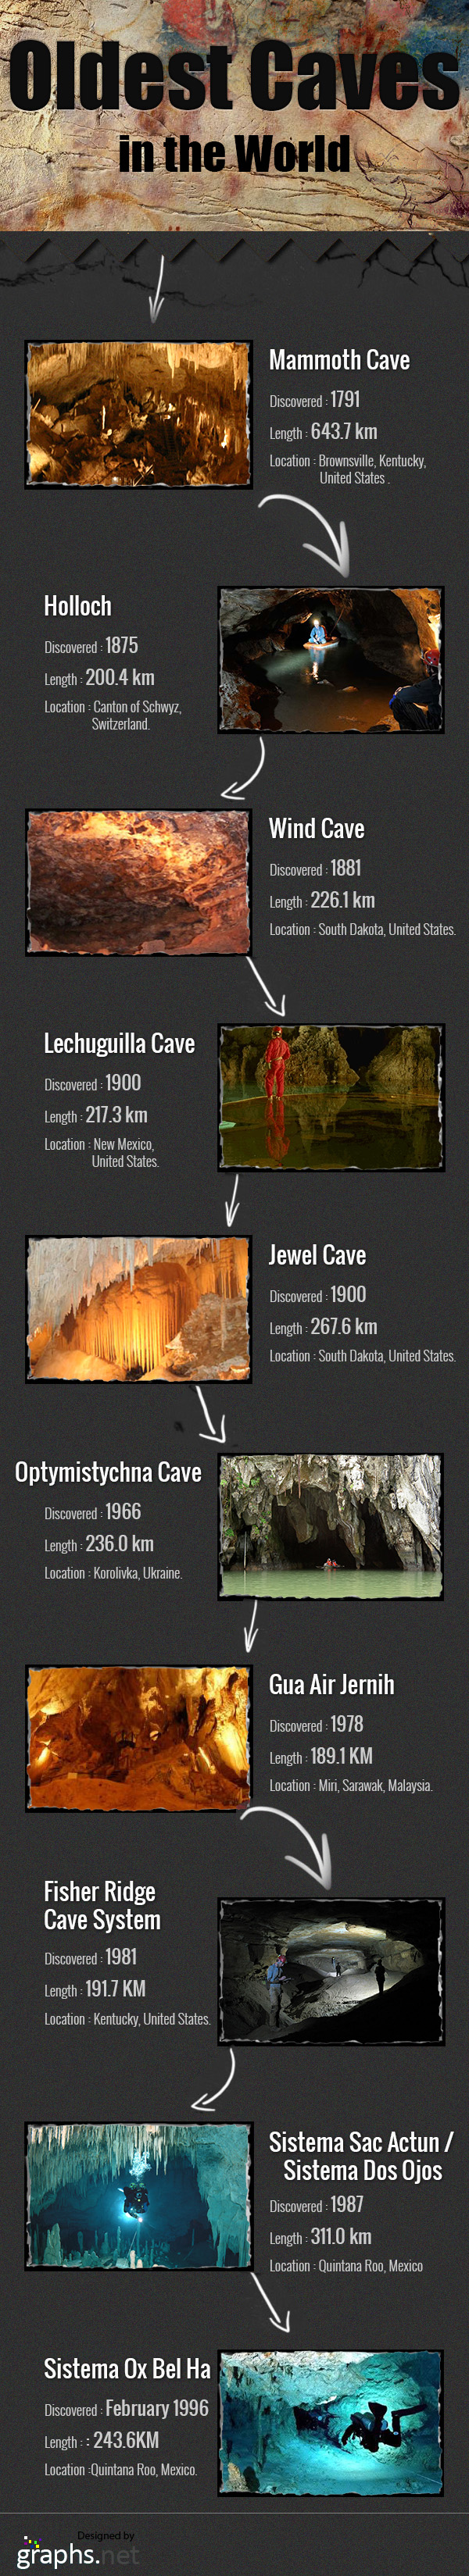 Oldest Caves in the World